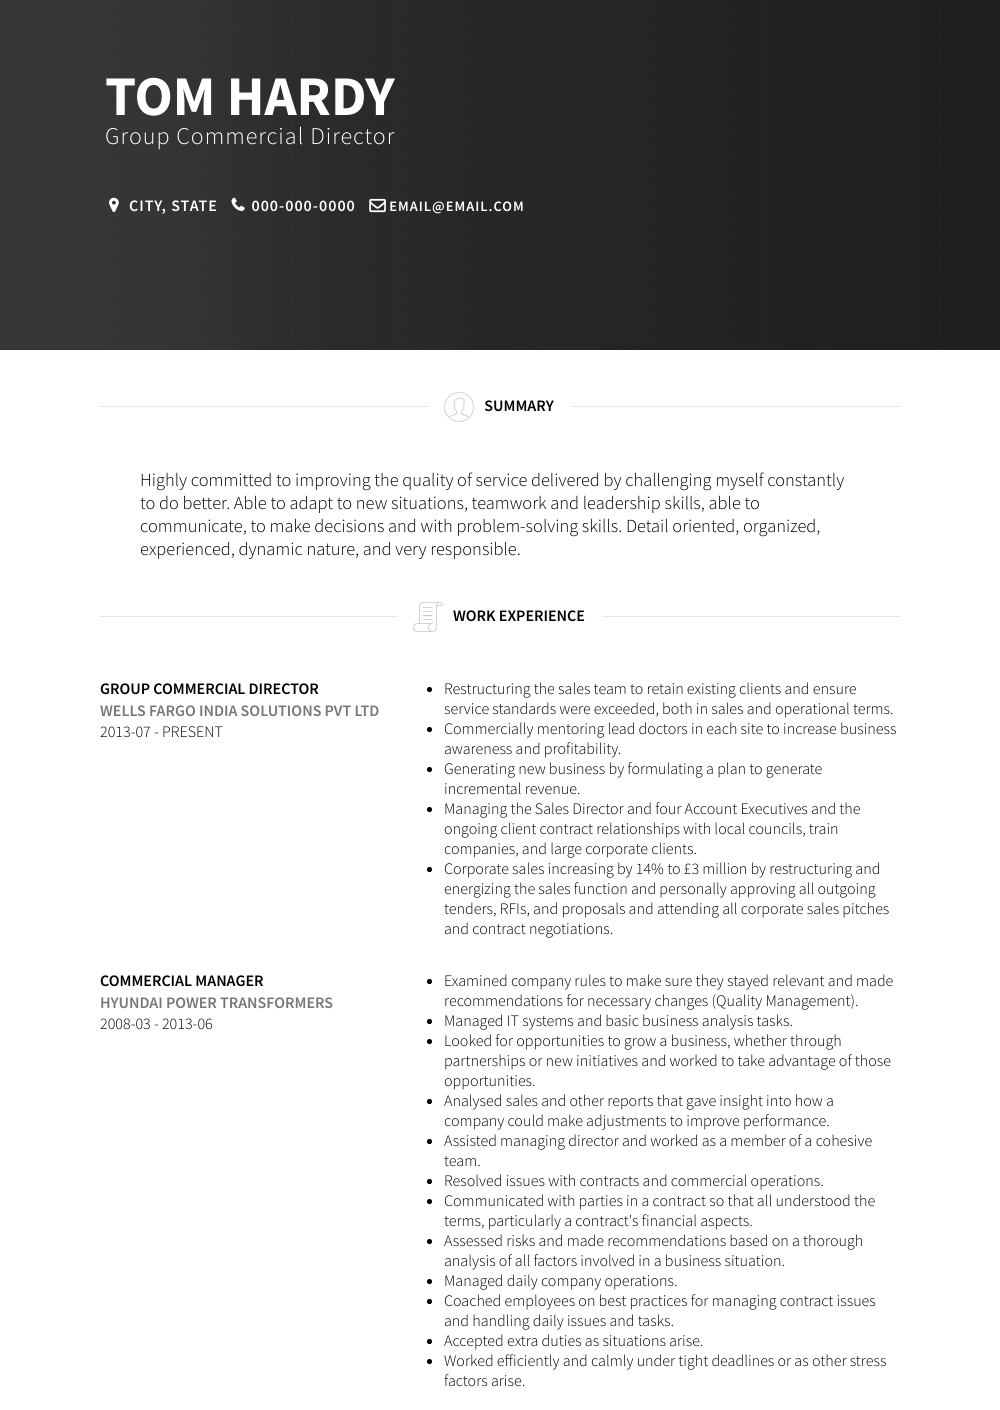 Group Commercial Director Resume Sample and Template